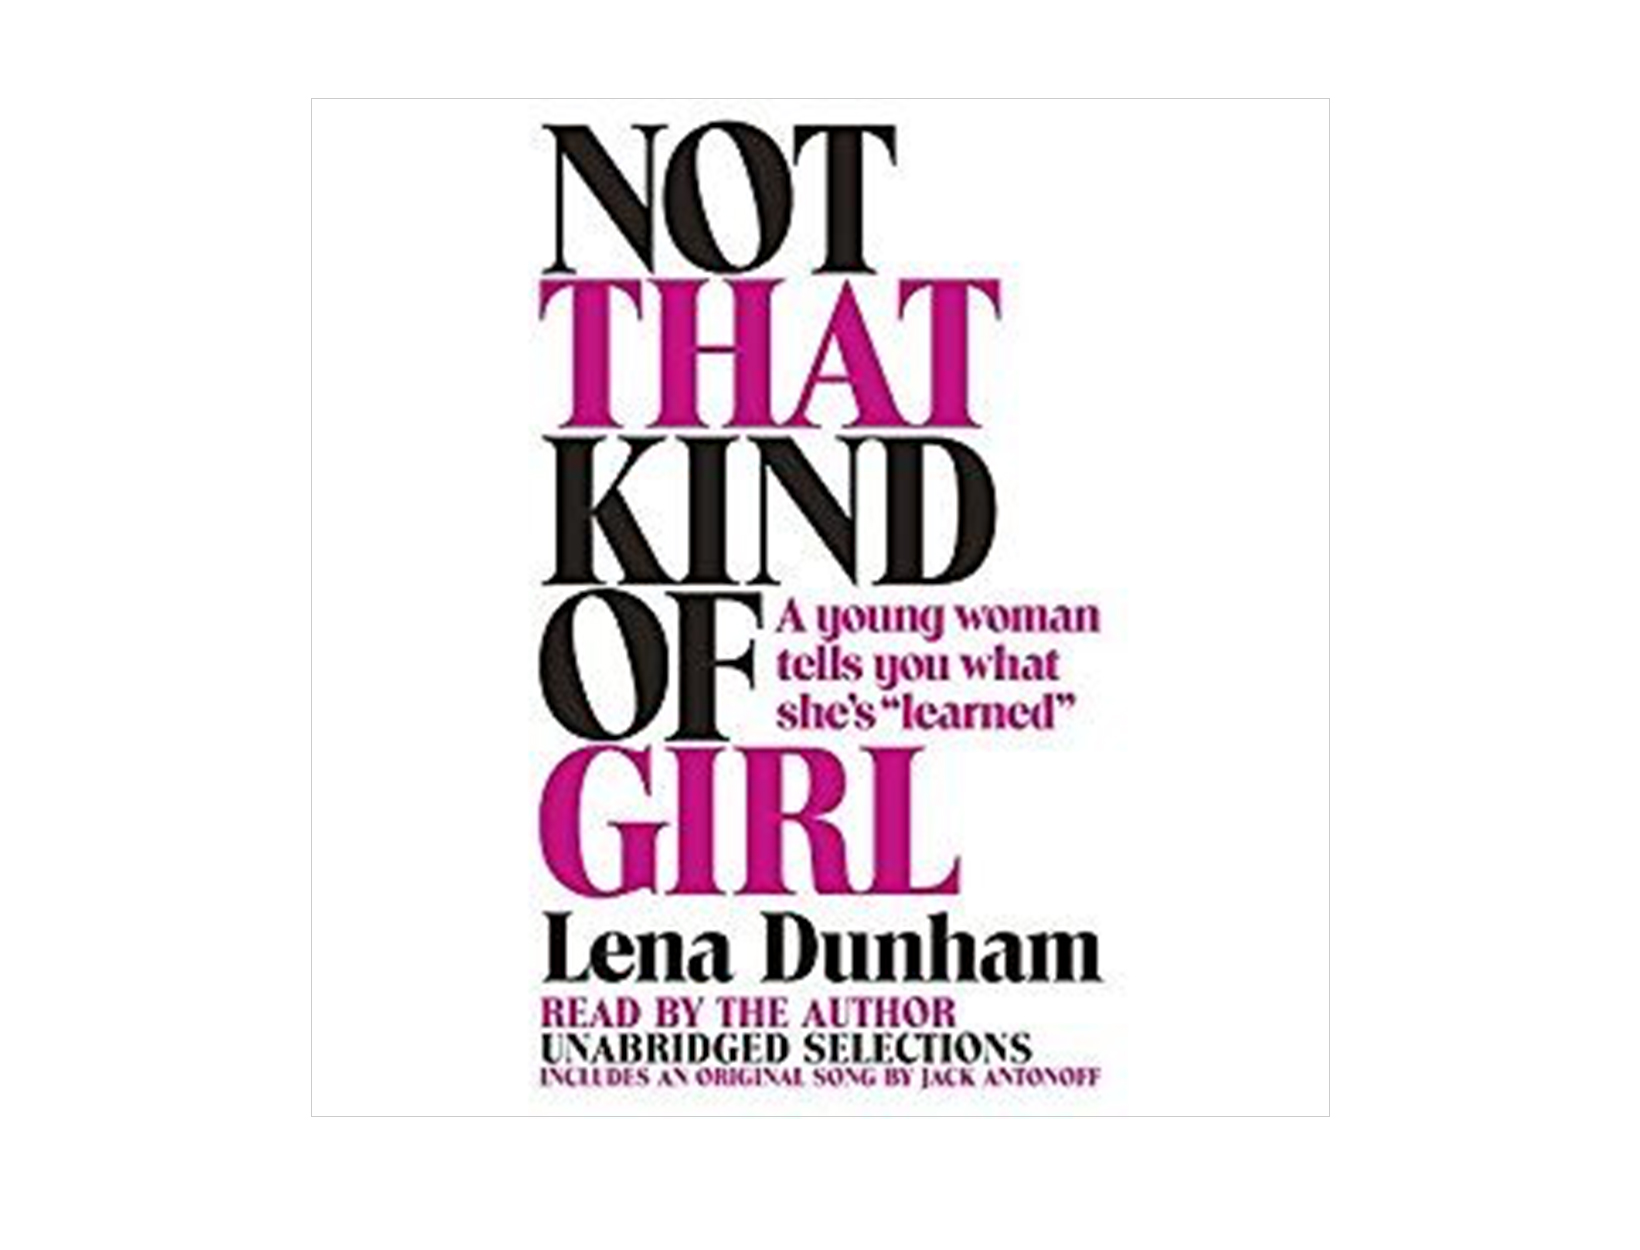 Not That Kind of Girl written & read by Lena Dunham